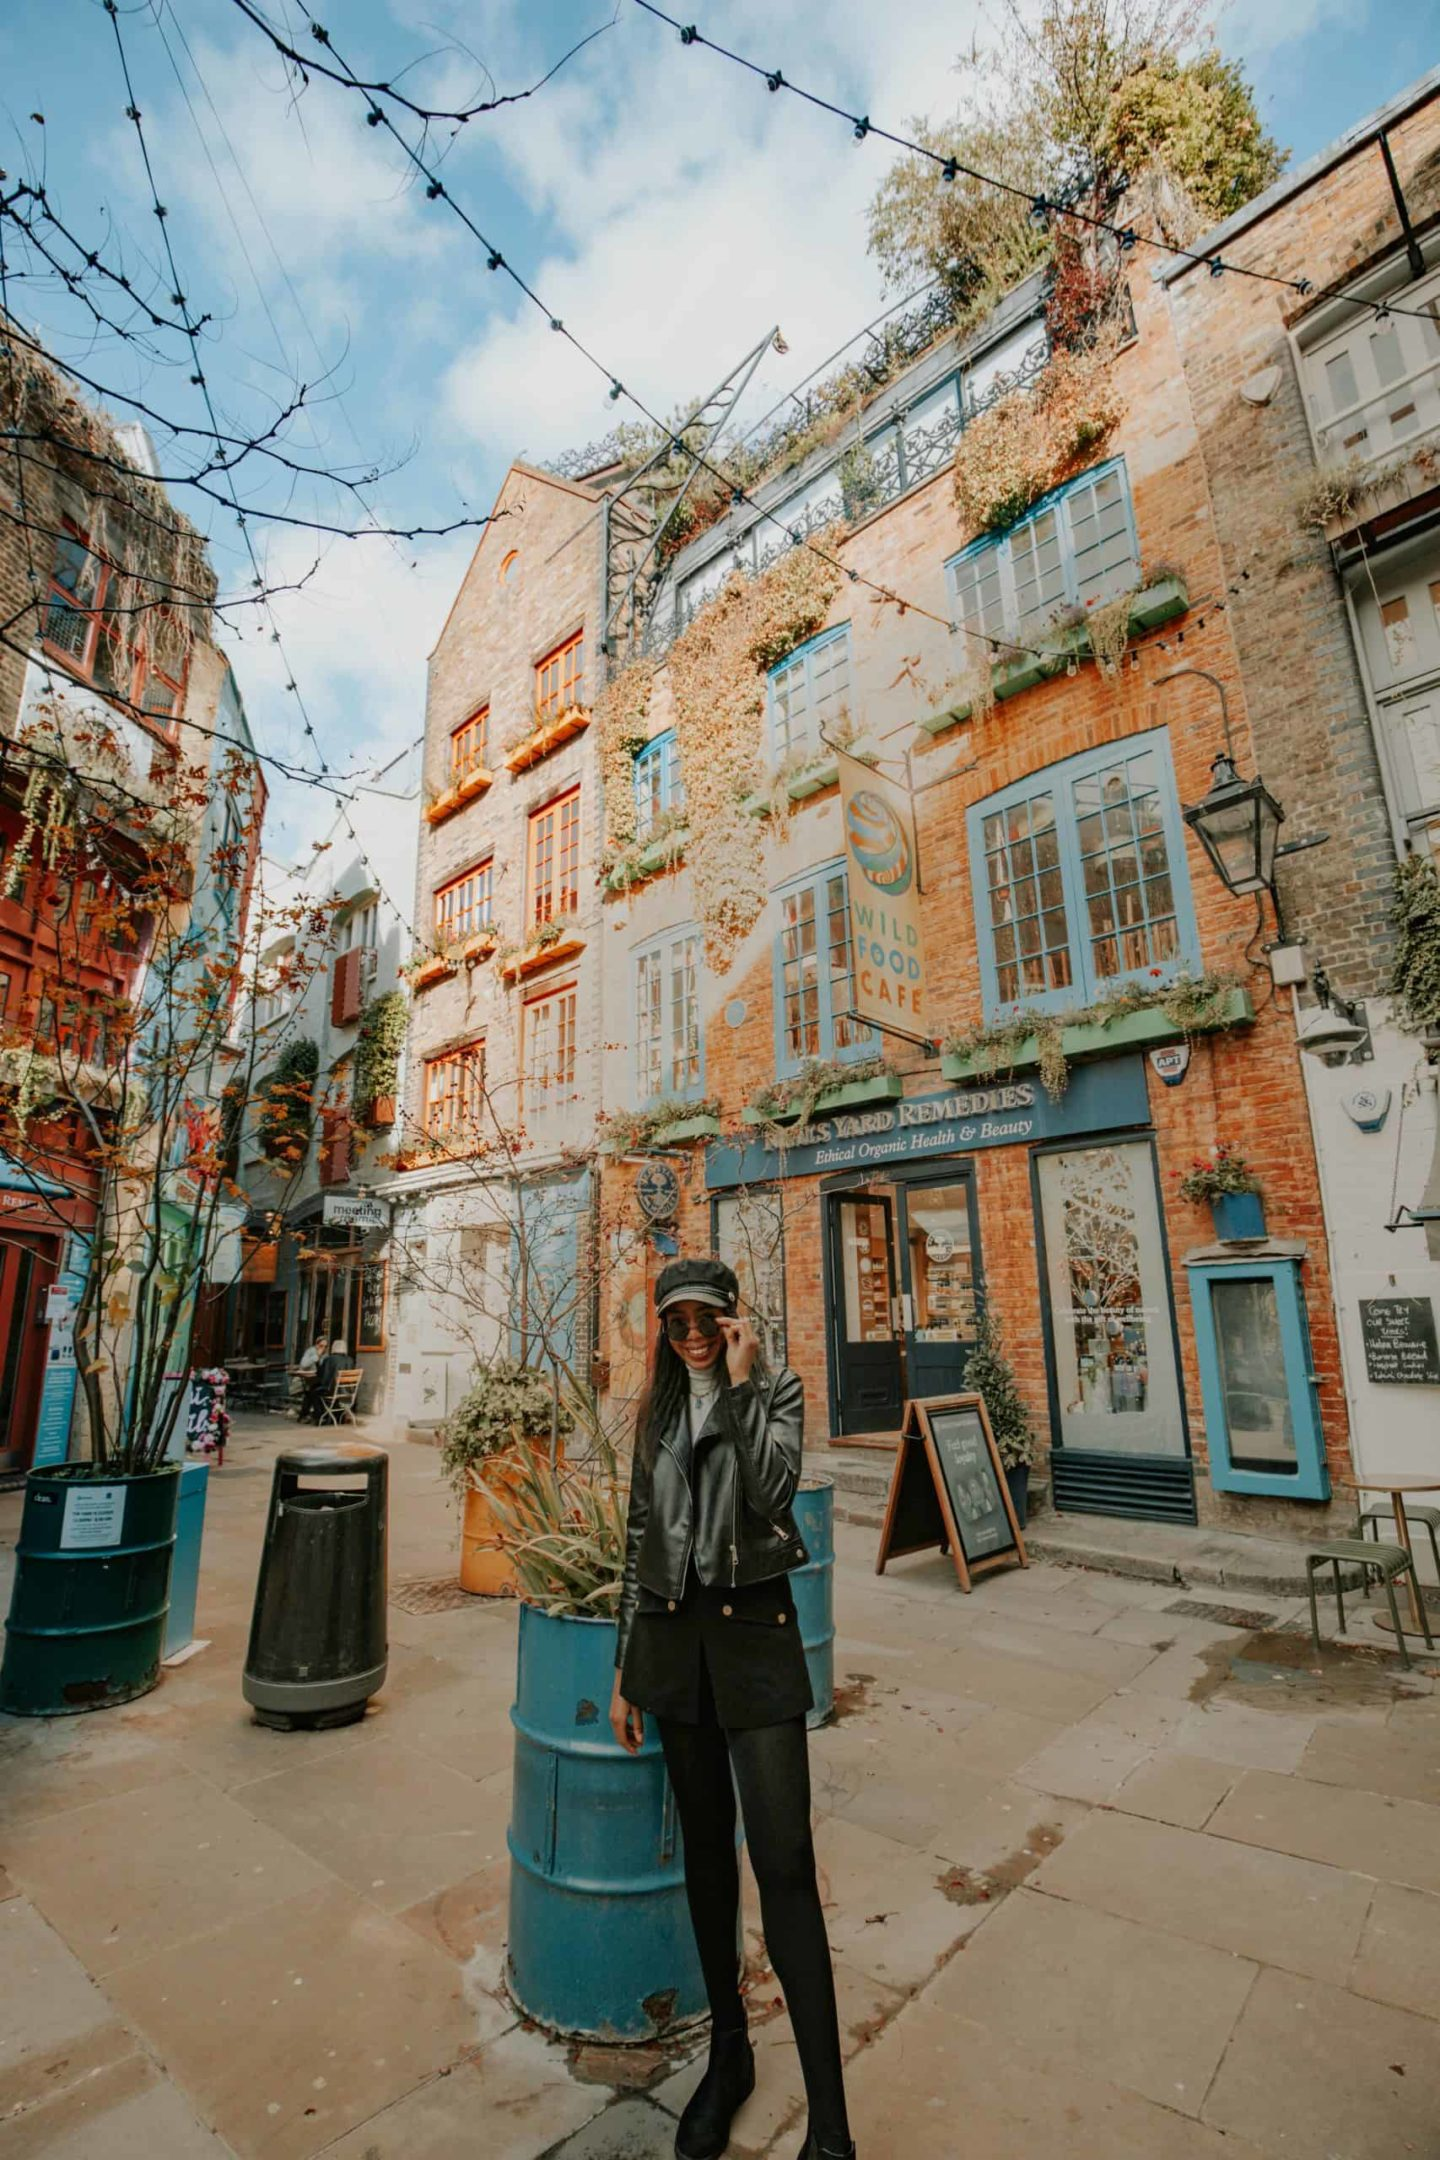 neals-yard-covent-garden-colorful-street